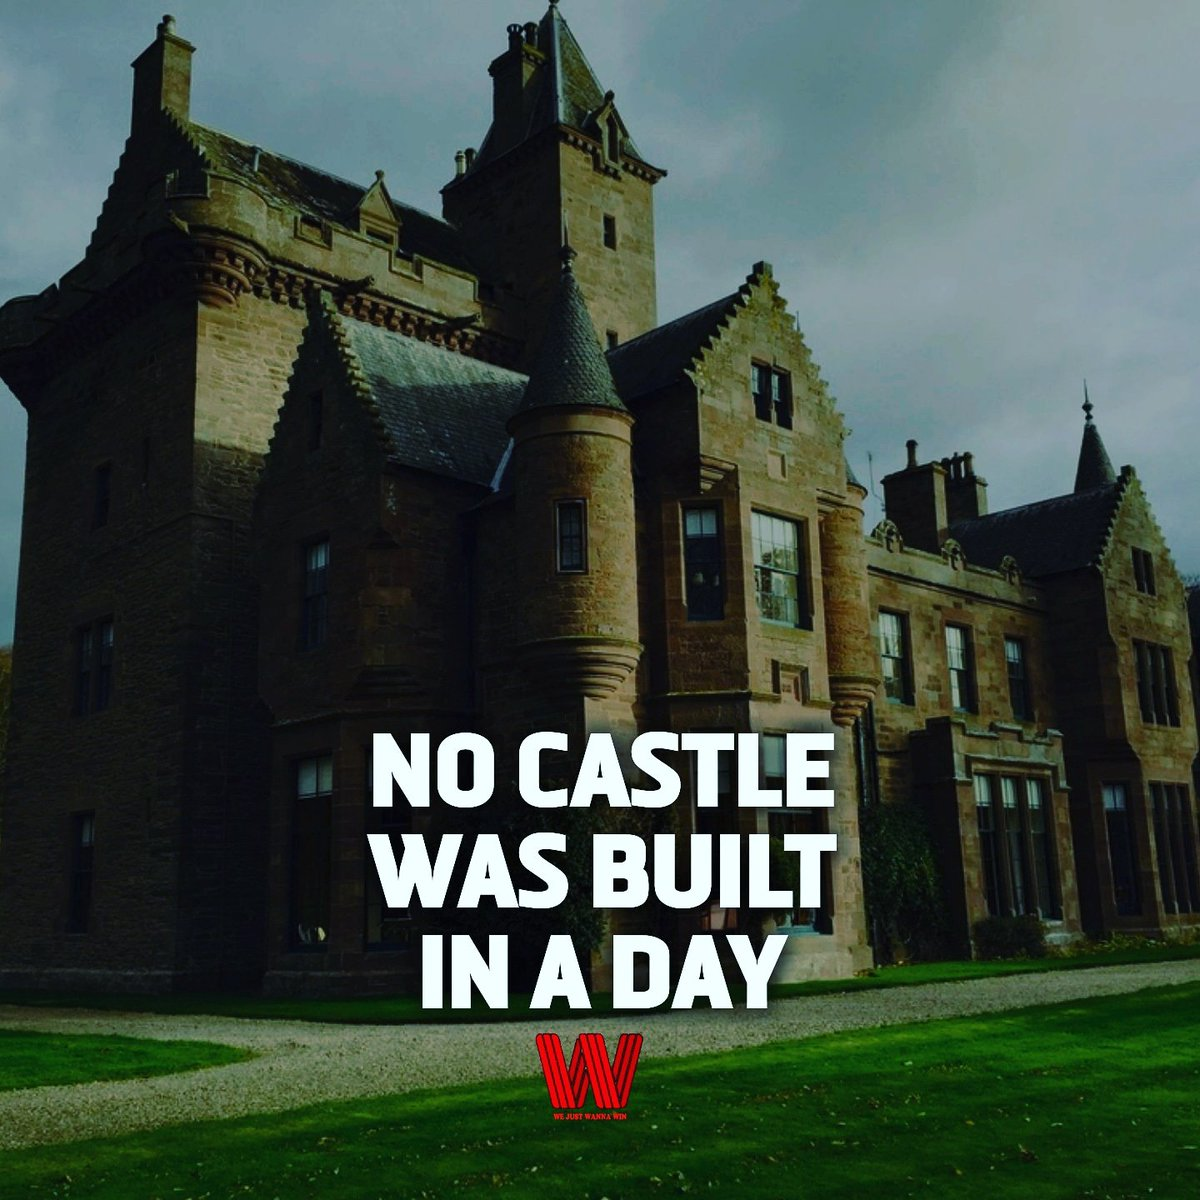 Take a look at The trillion-dollar man's castle, @danspena  It always takes time, determination and hard work. Combine those three attributes and built your castle up. #motivated #MotivationalQuotes #hardwork pic.twitter.com/qEM8SWgm2I